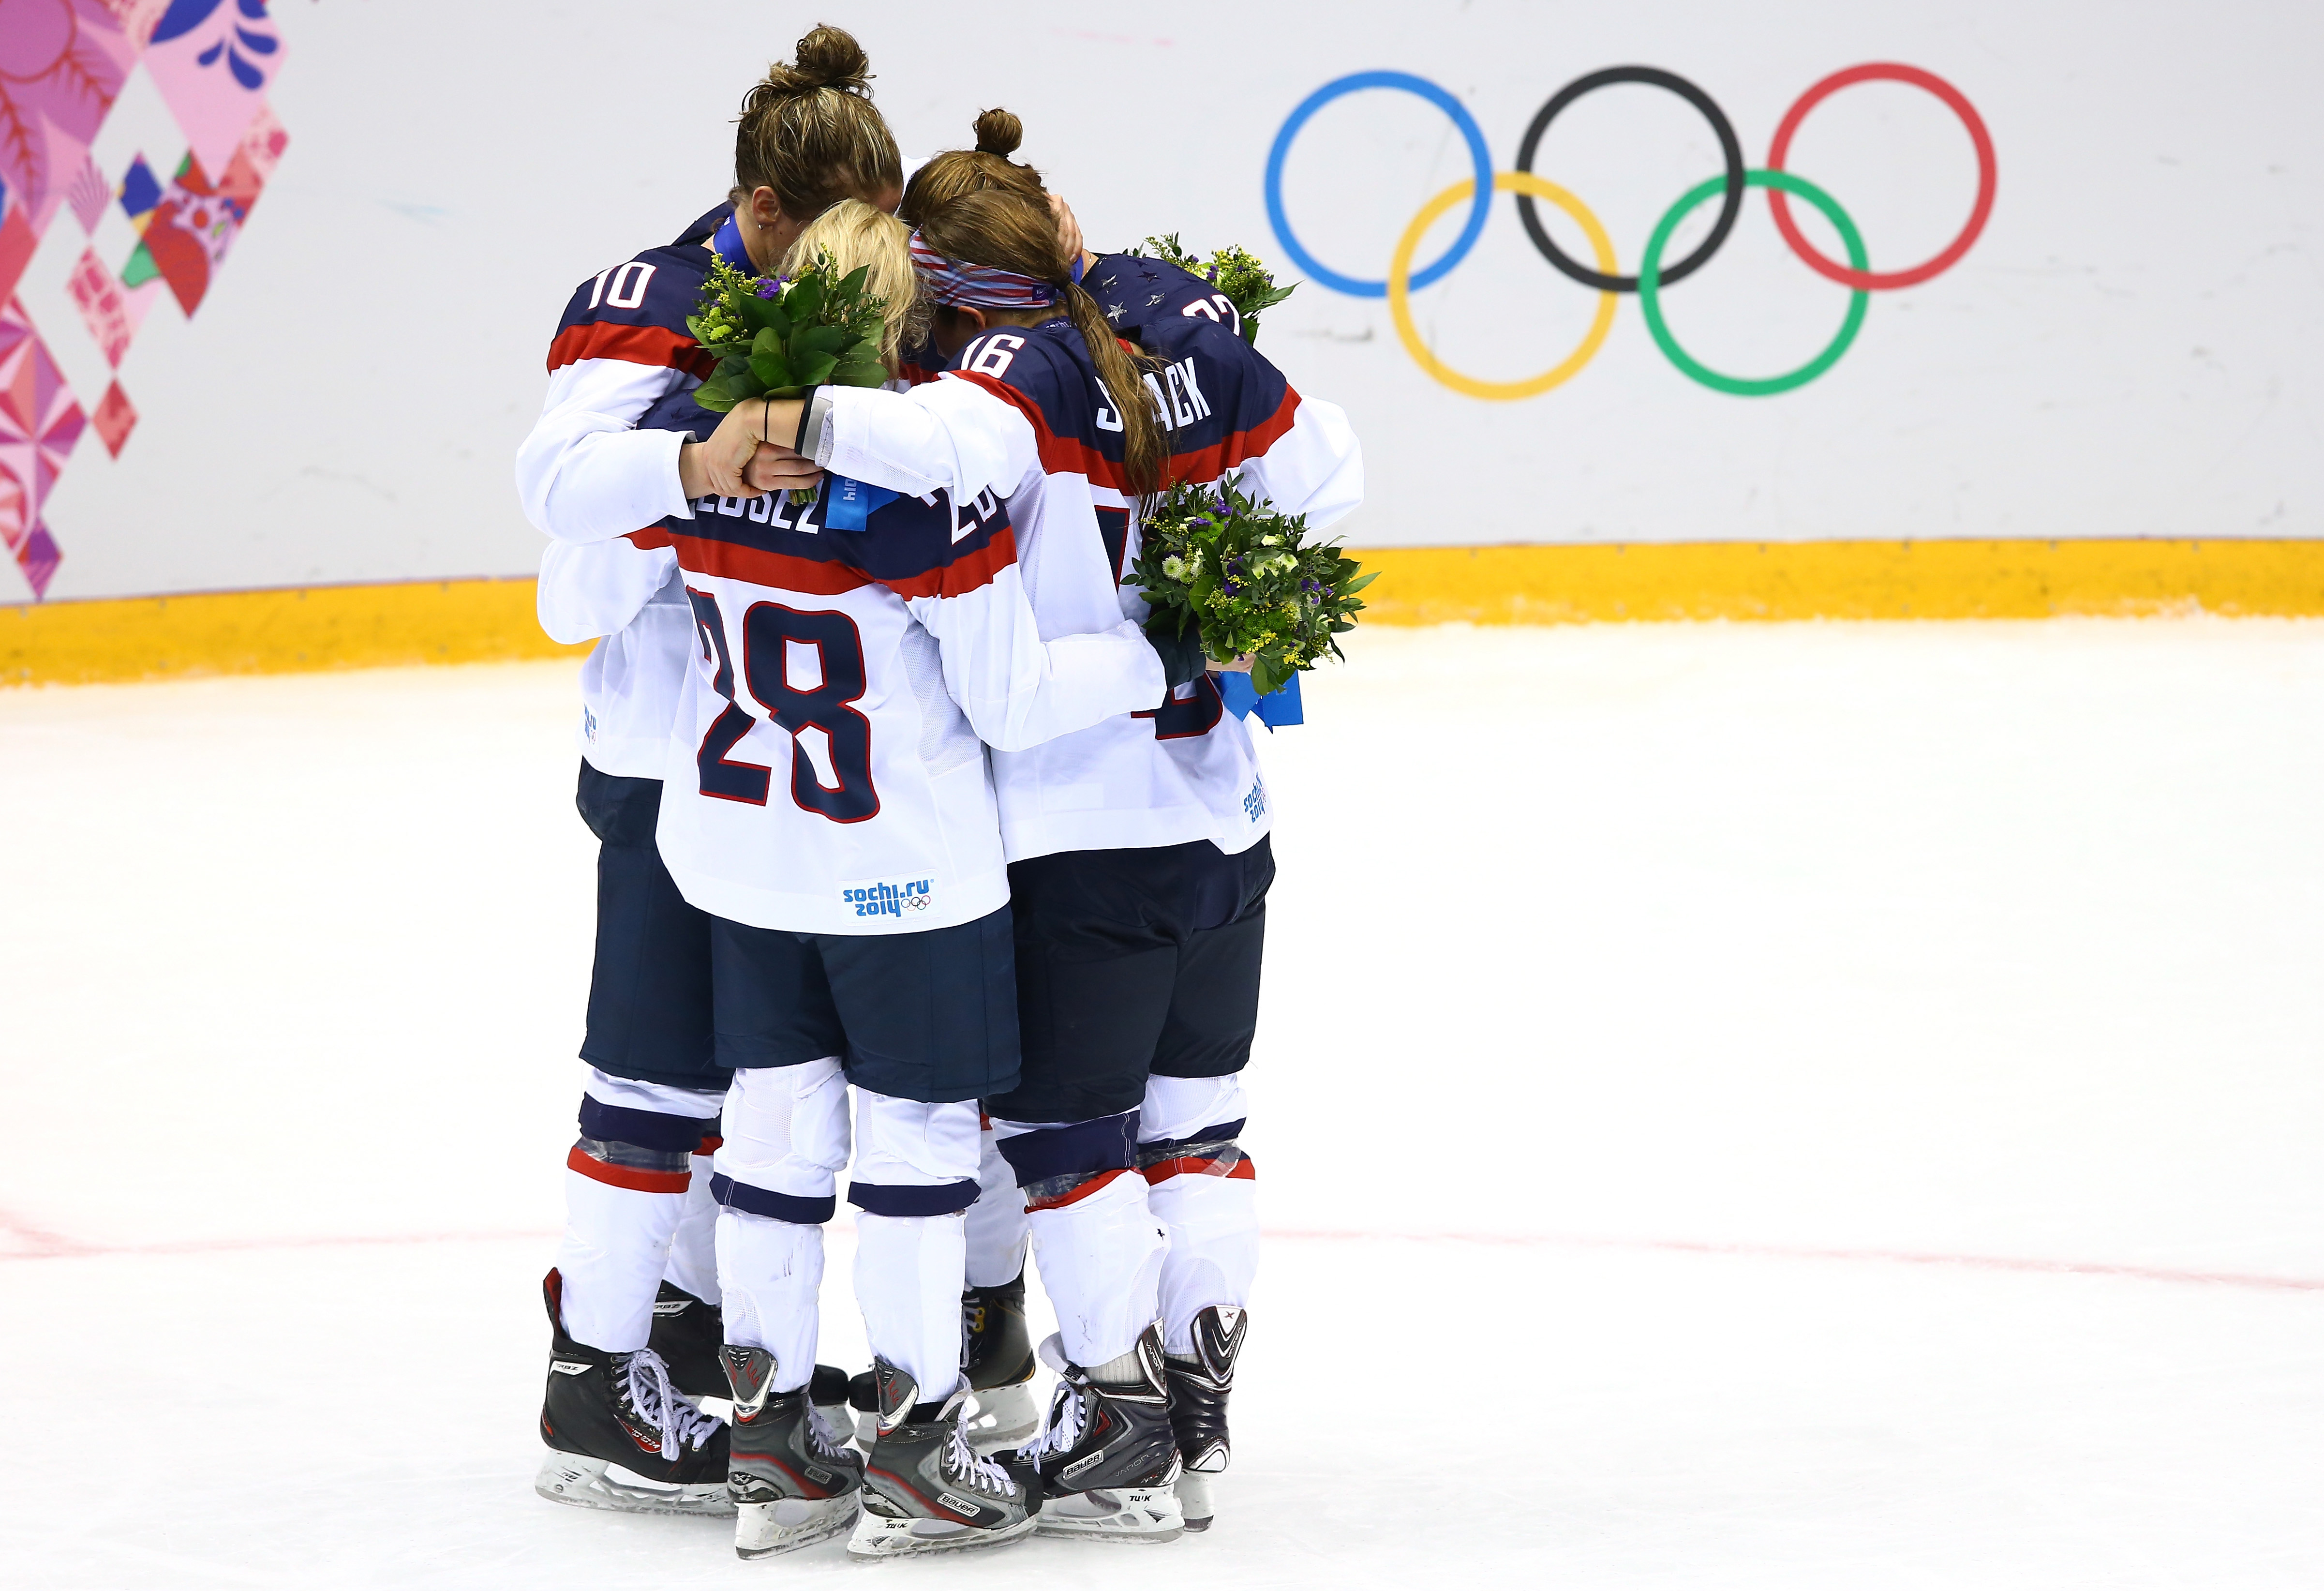 SOCHI, RUSSIA - FEBRUARY 20: Silver medalists Kelli Stack #16, Meghan Duggan #10, Amanda Kessel #28 and Kacey Bellamy #22 of the United States react during the flower ceremony after losing 3-2 to Canada in overtime during the Ice Hockey Women's Gold Medal Game on day 13 of the Sochi 2014 Winter Olympics at Bolshoy Ice Dome on February 20, 2014 in Sochi, Russia. (Photo by Doug Pensinger/Getty Images)